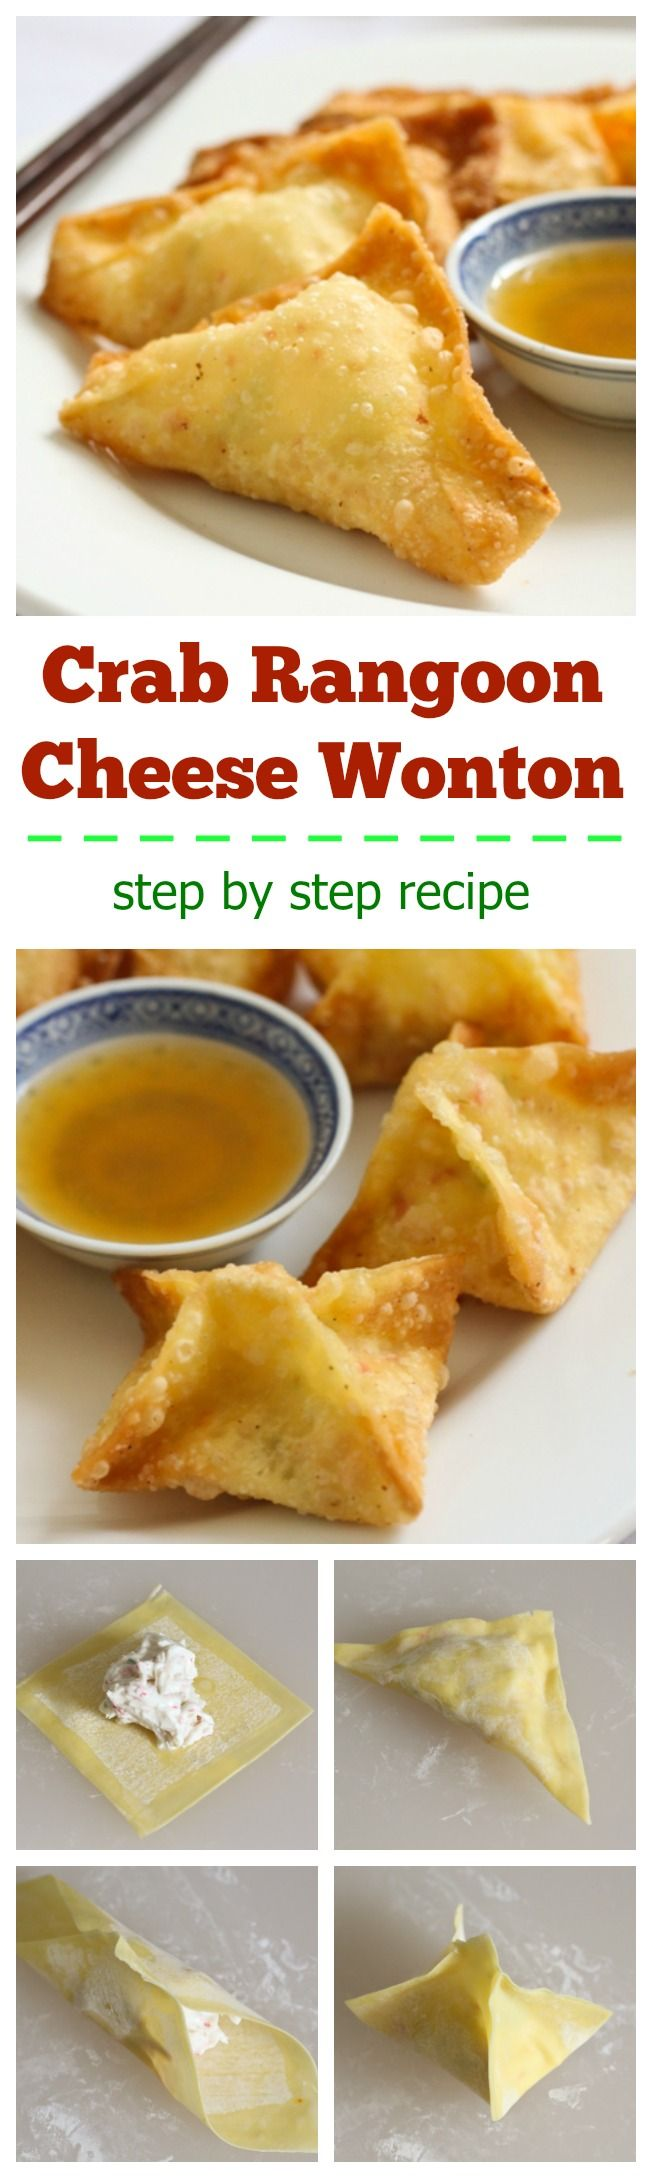 Crab rangoons aka cheese wontons or cheese puffs are a popular Chinese appetizer.  Following this simple step-by-step recipe to make for your next party! (Simple Food Recipes)